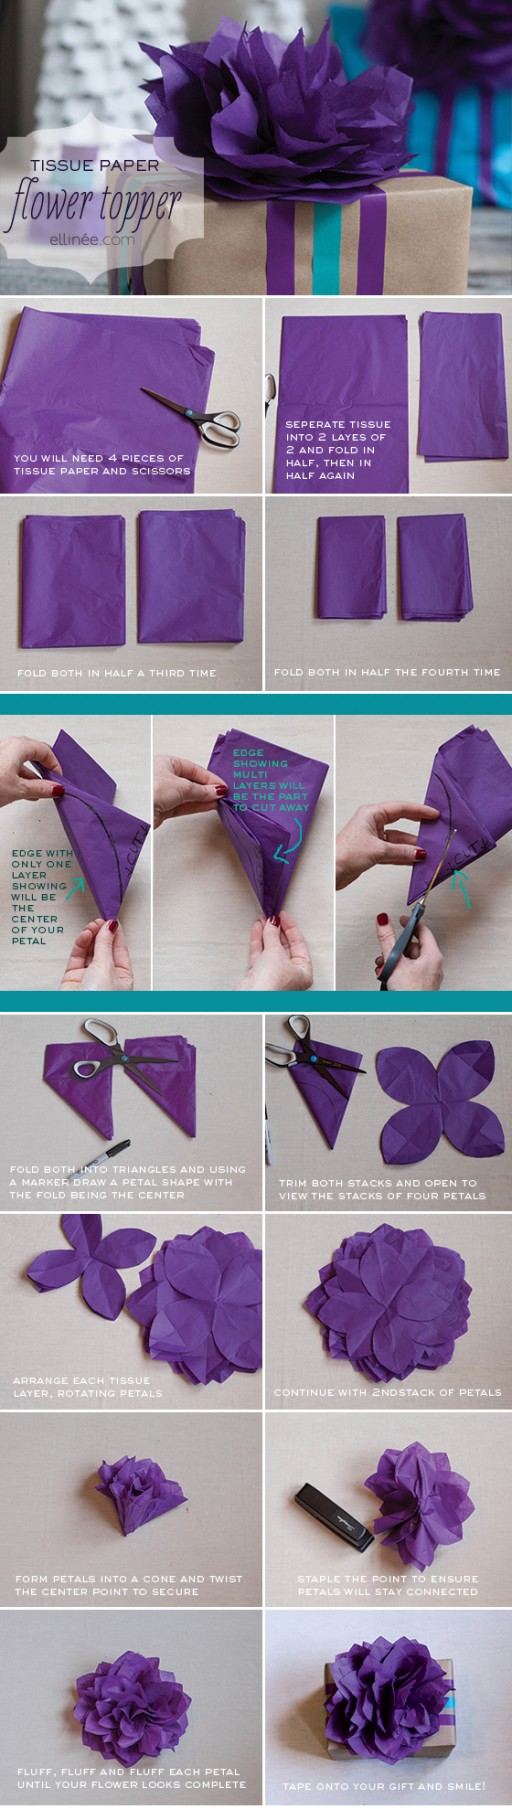 DIY Tissue Paper Flower Topper Tutorial